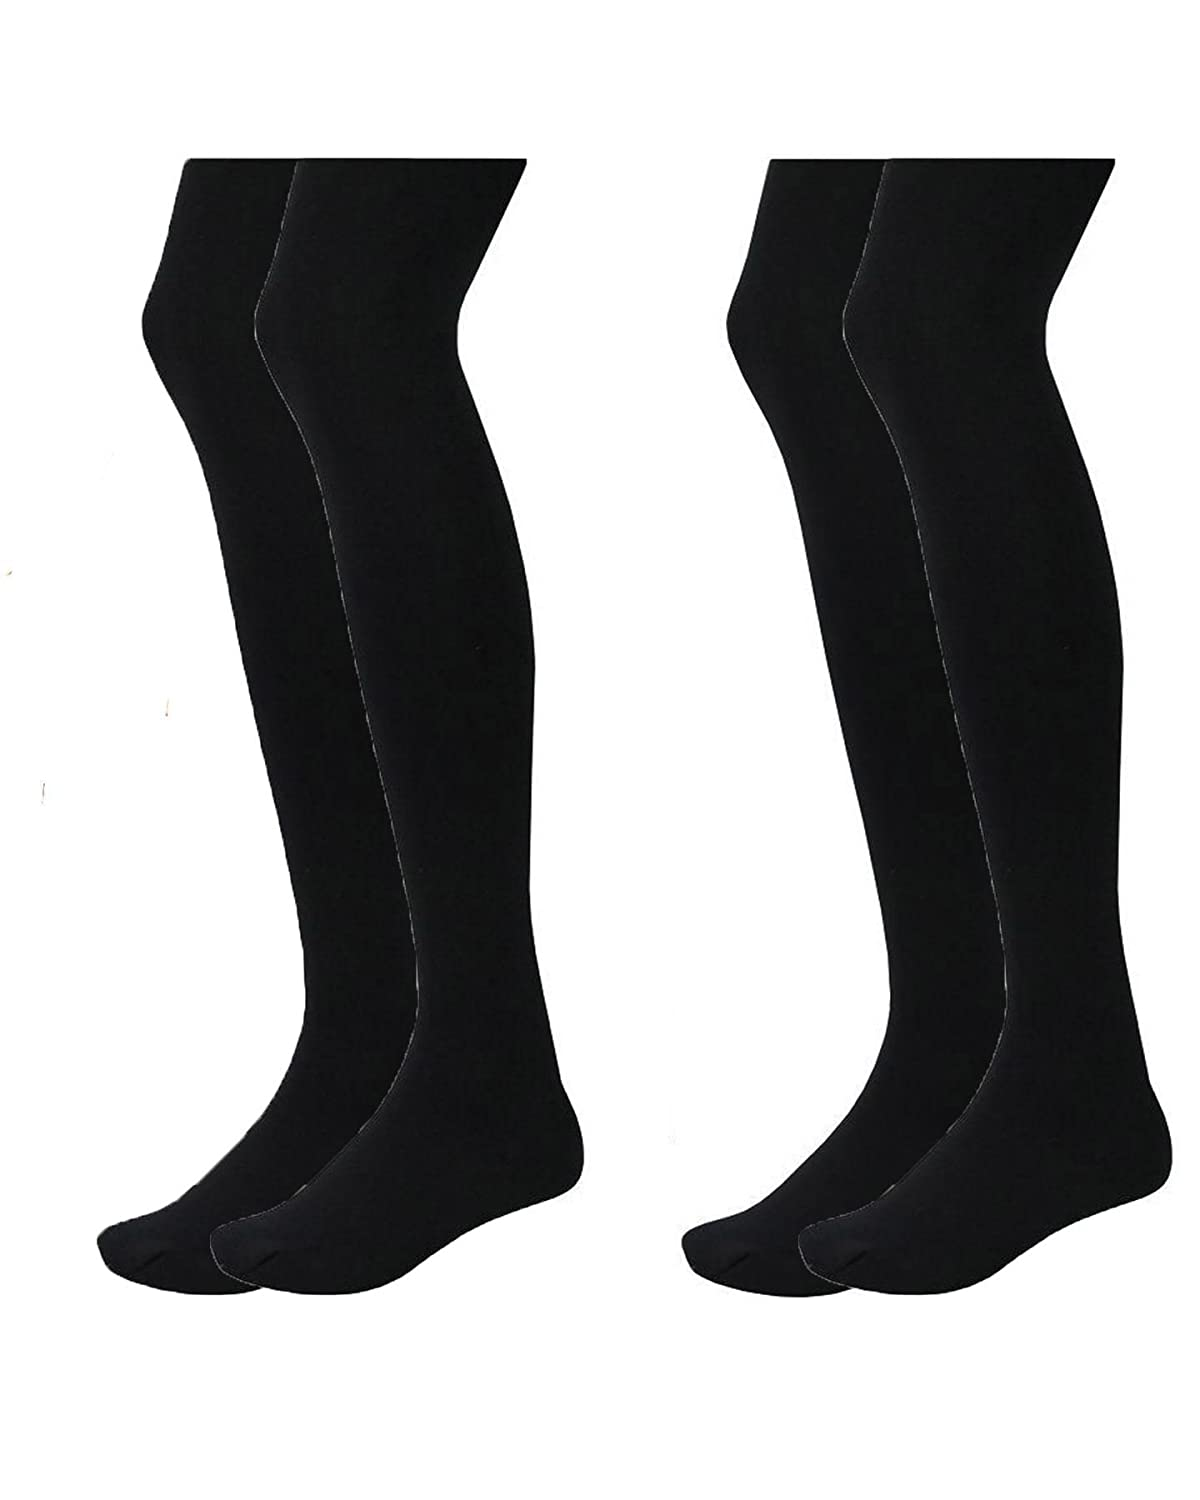 NEW KIDS GIRLS BLACK HEAT INSULATING THERMAL FLEECE LINED WARM 2 PACK TIGHTS